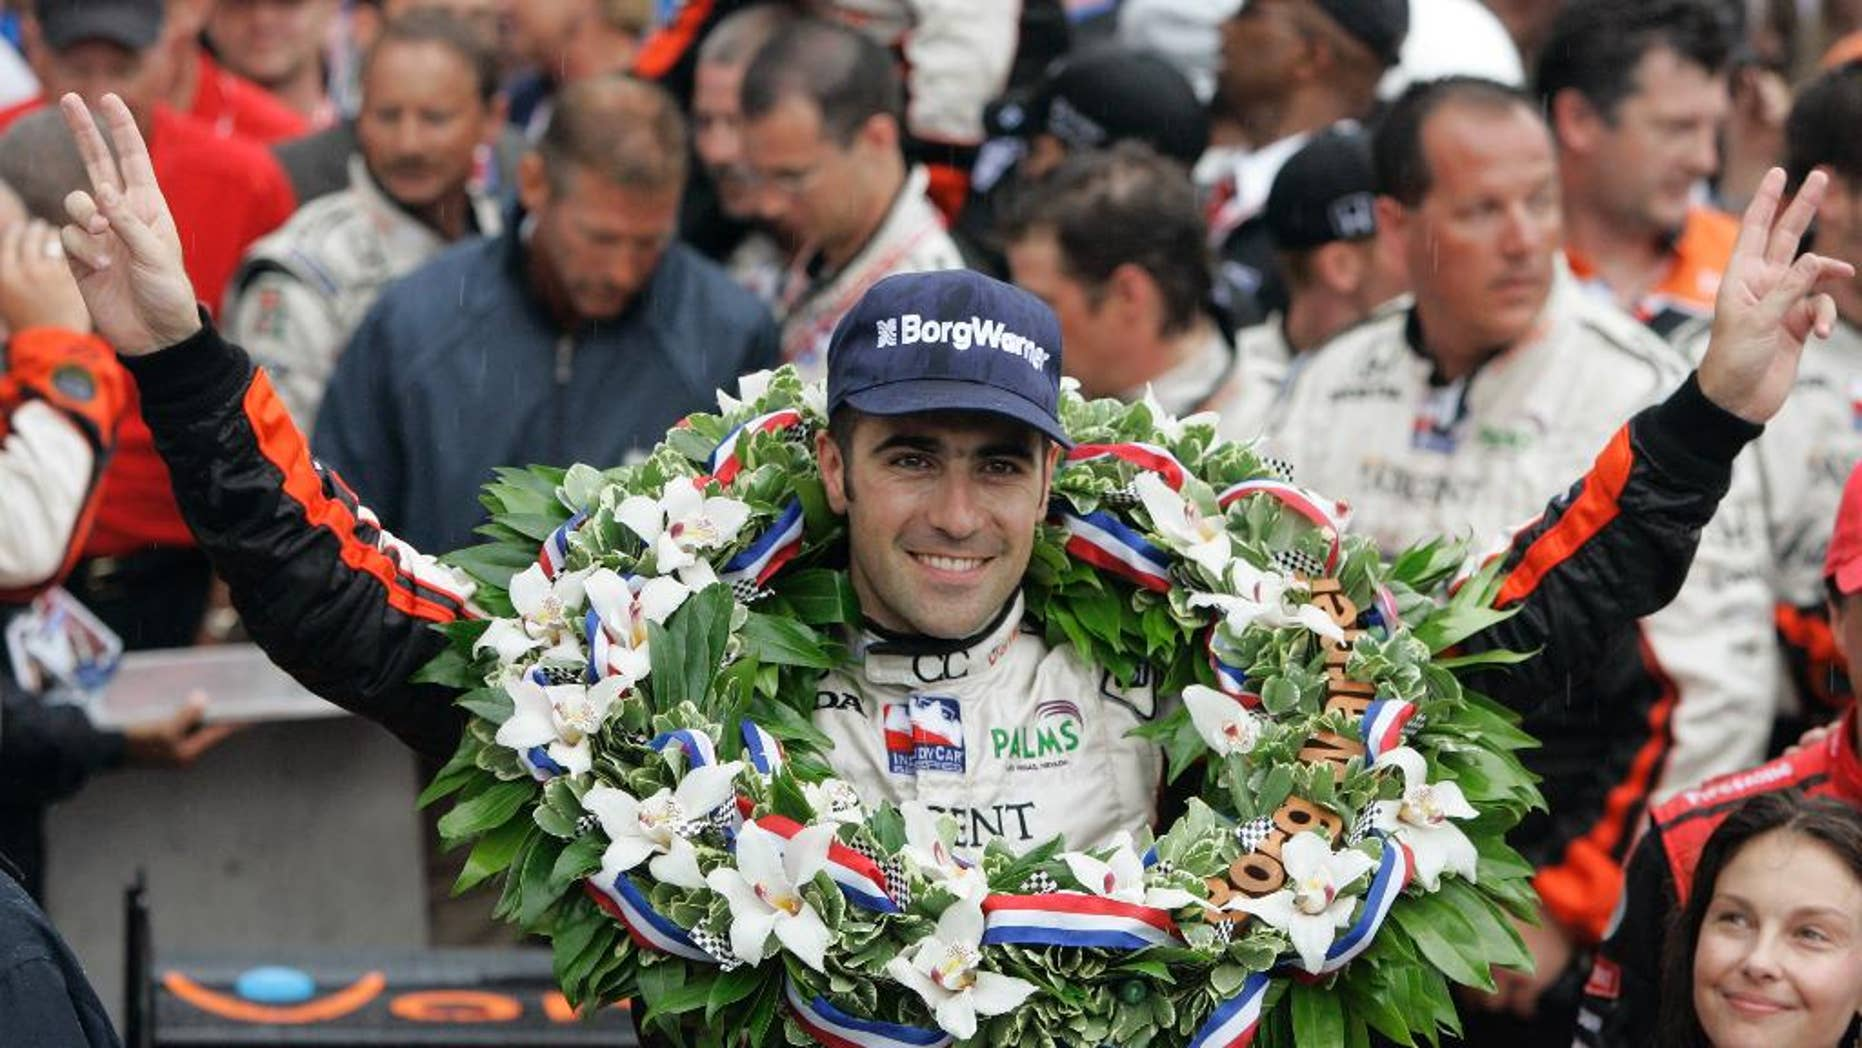 FILE - In this May 27, 2007, file photo, Dario Franchitti, of Scotland, gestures after his win in the Indianapolis 500 auto race at Indianapolis Motor Speedway in Indianapolis, Ind. At lower right is his wife, actress Ashley Judd. (AP Photo/Darron Cummings, File)